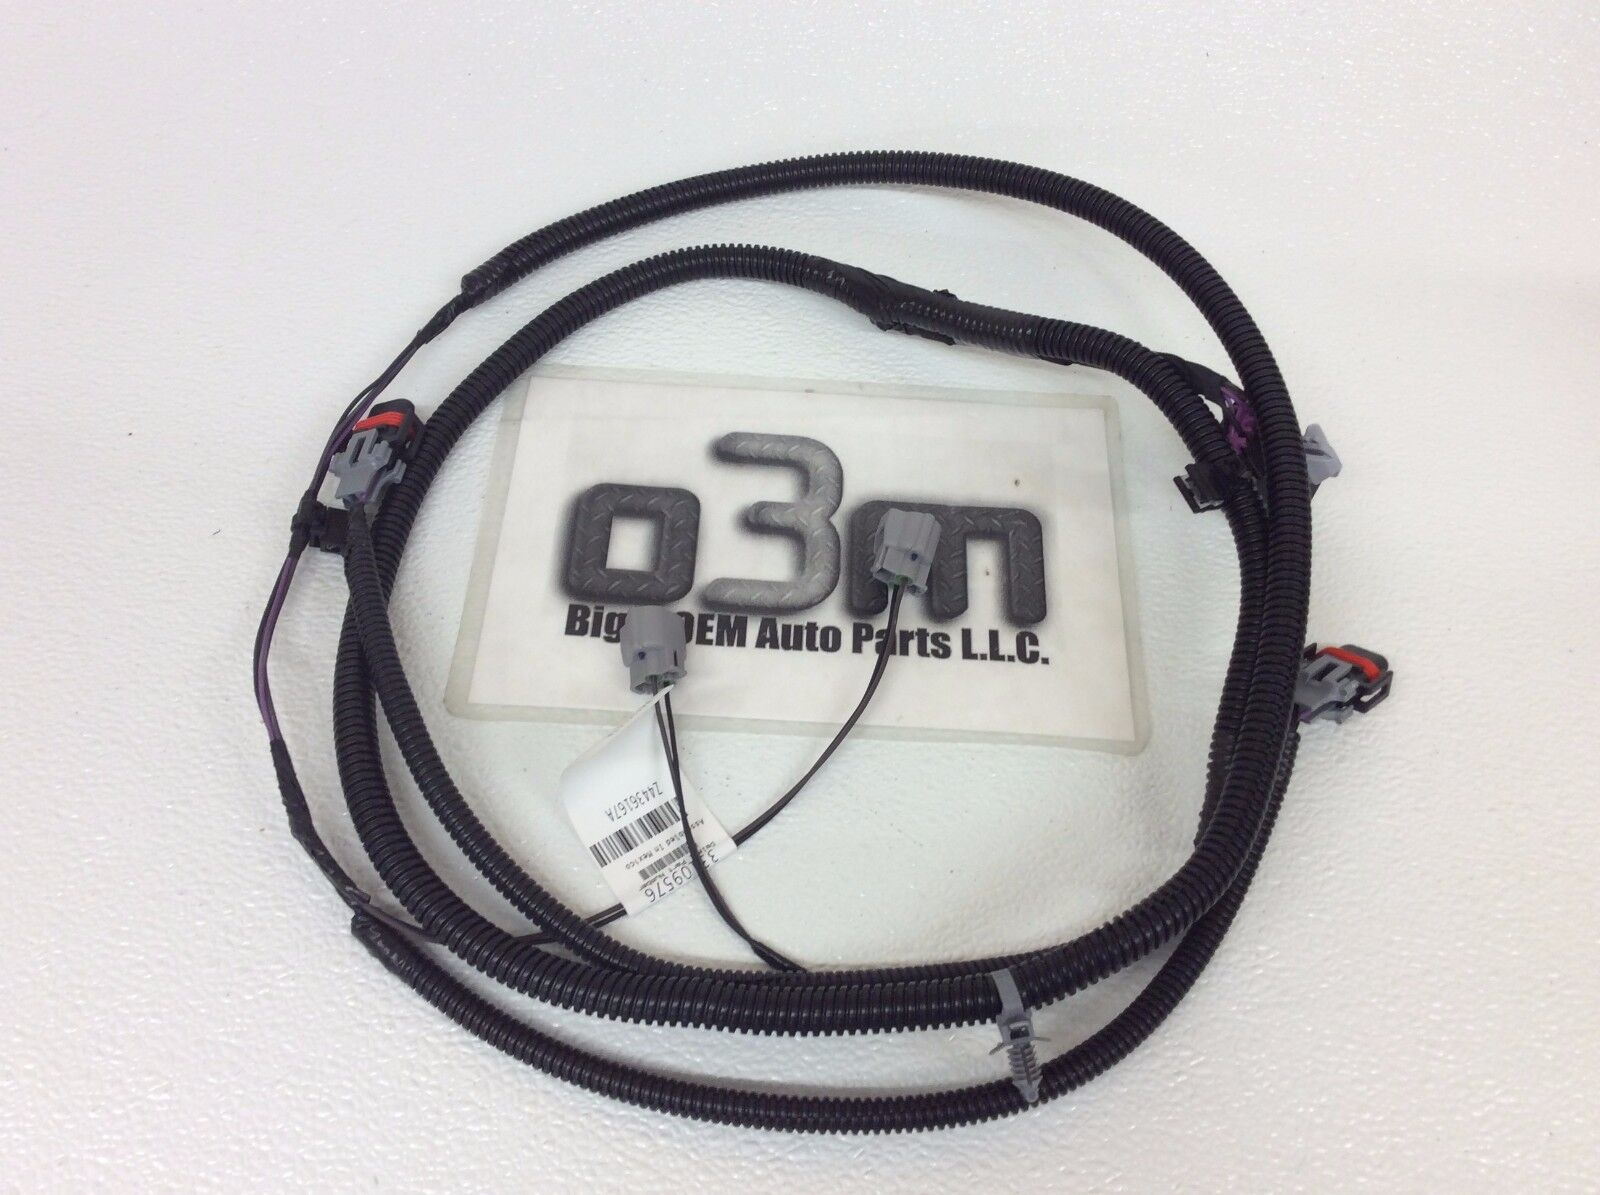 2013 Gmc Fog Light Wiring Harness Diagram For Free In Addition Hid Chevrolet Express Cargo Van 1500 Work